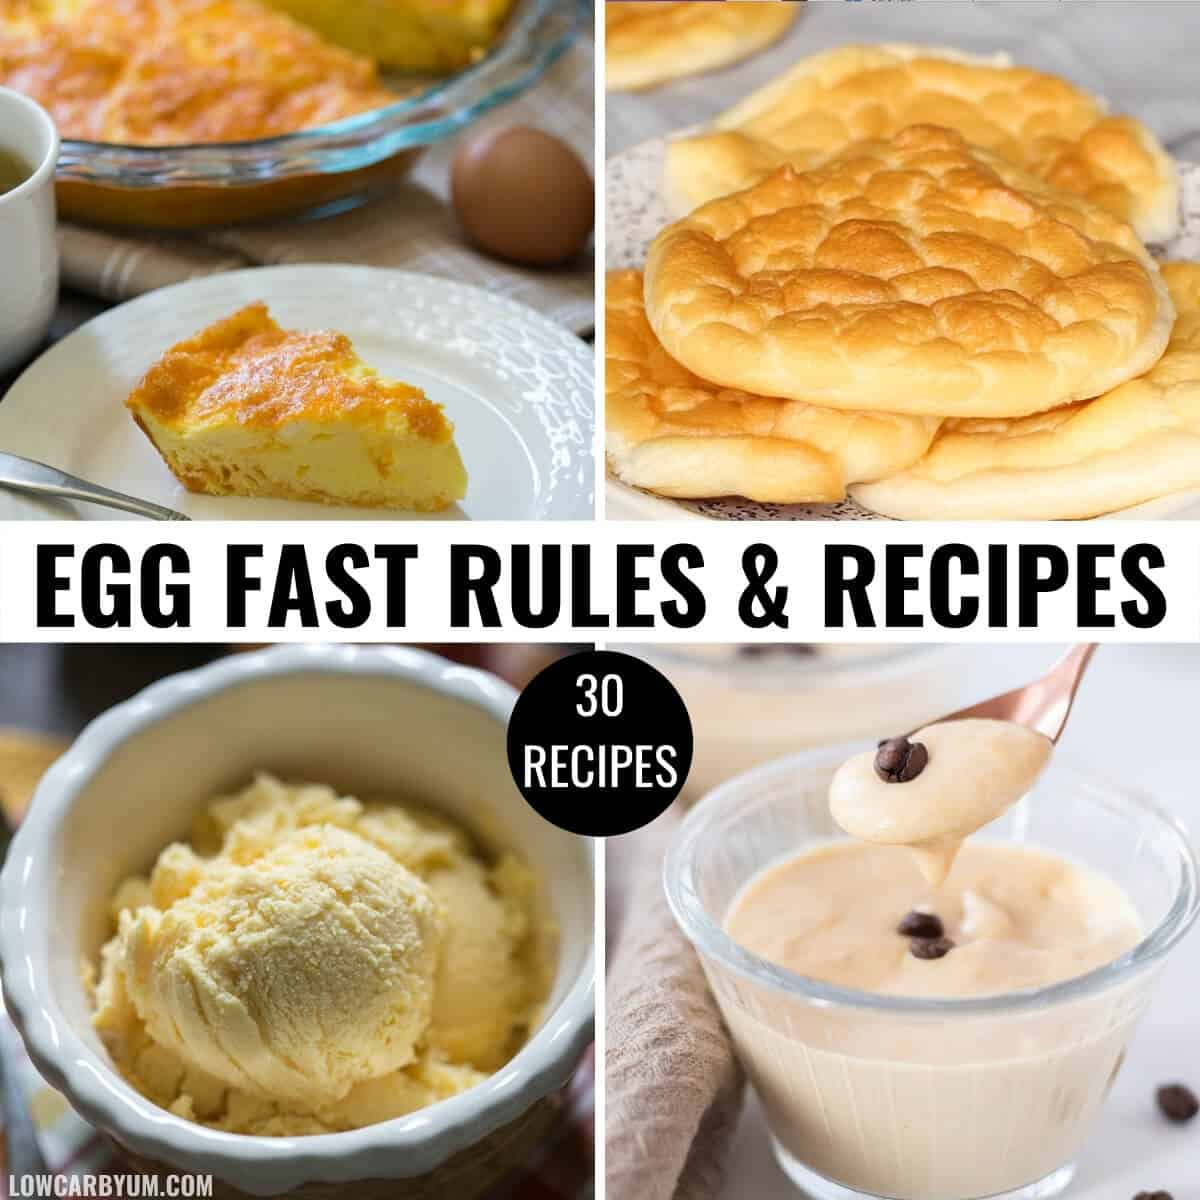 keto egg fast diet recipes square feature image